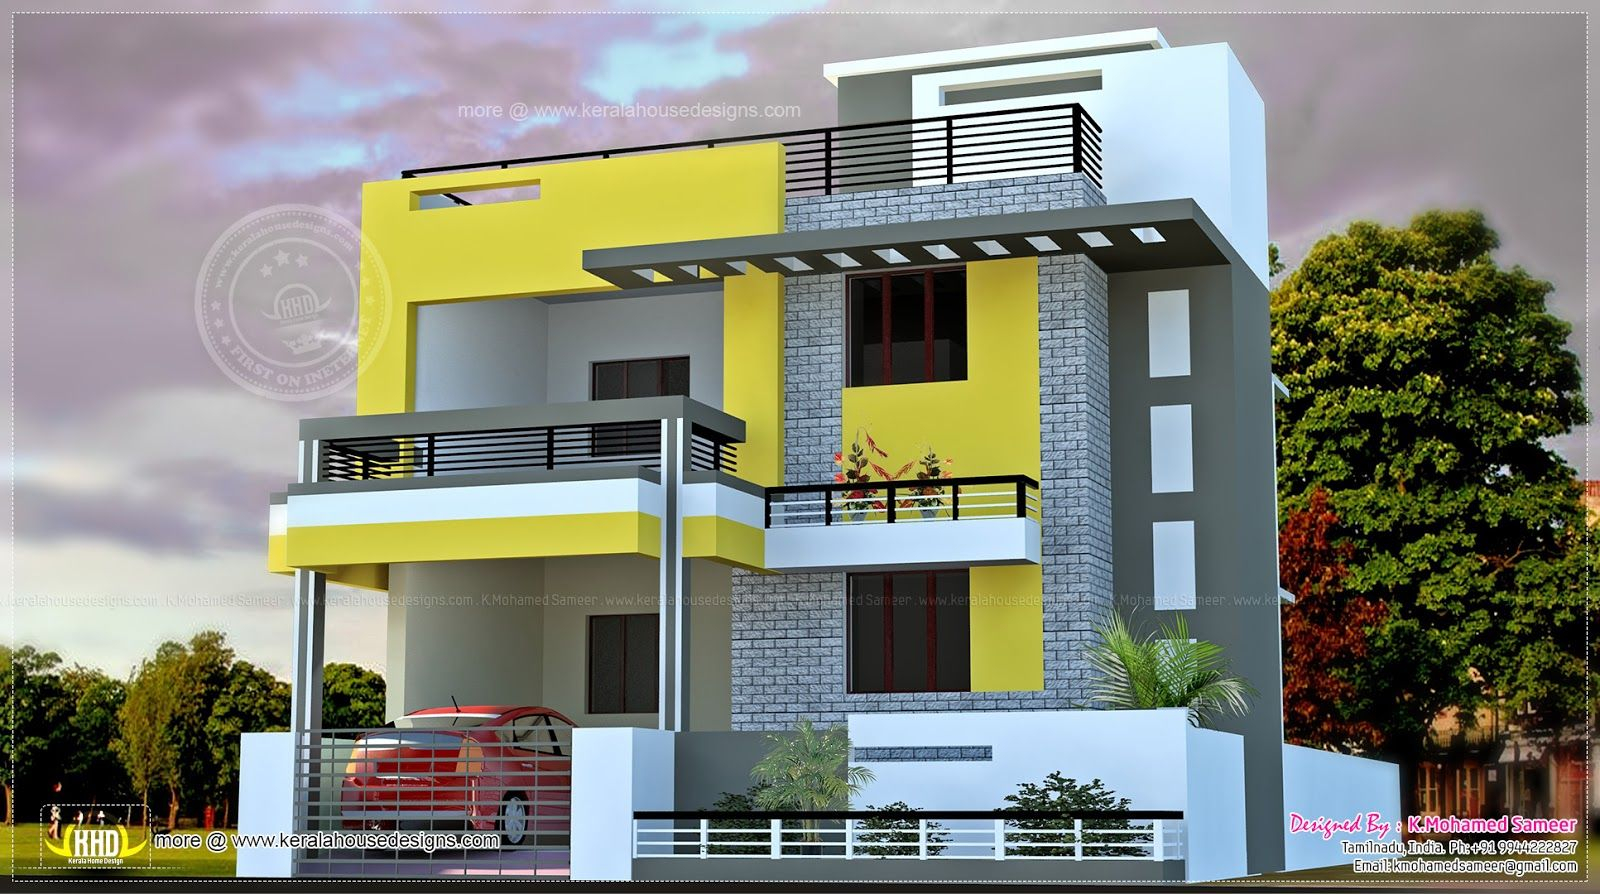 Fancy Elevations Of Residential Buildings In Indian Photo Gallery - Google in Indian Home Elevation Design Photo Gallery